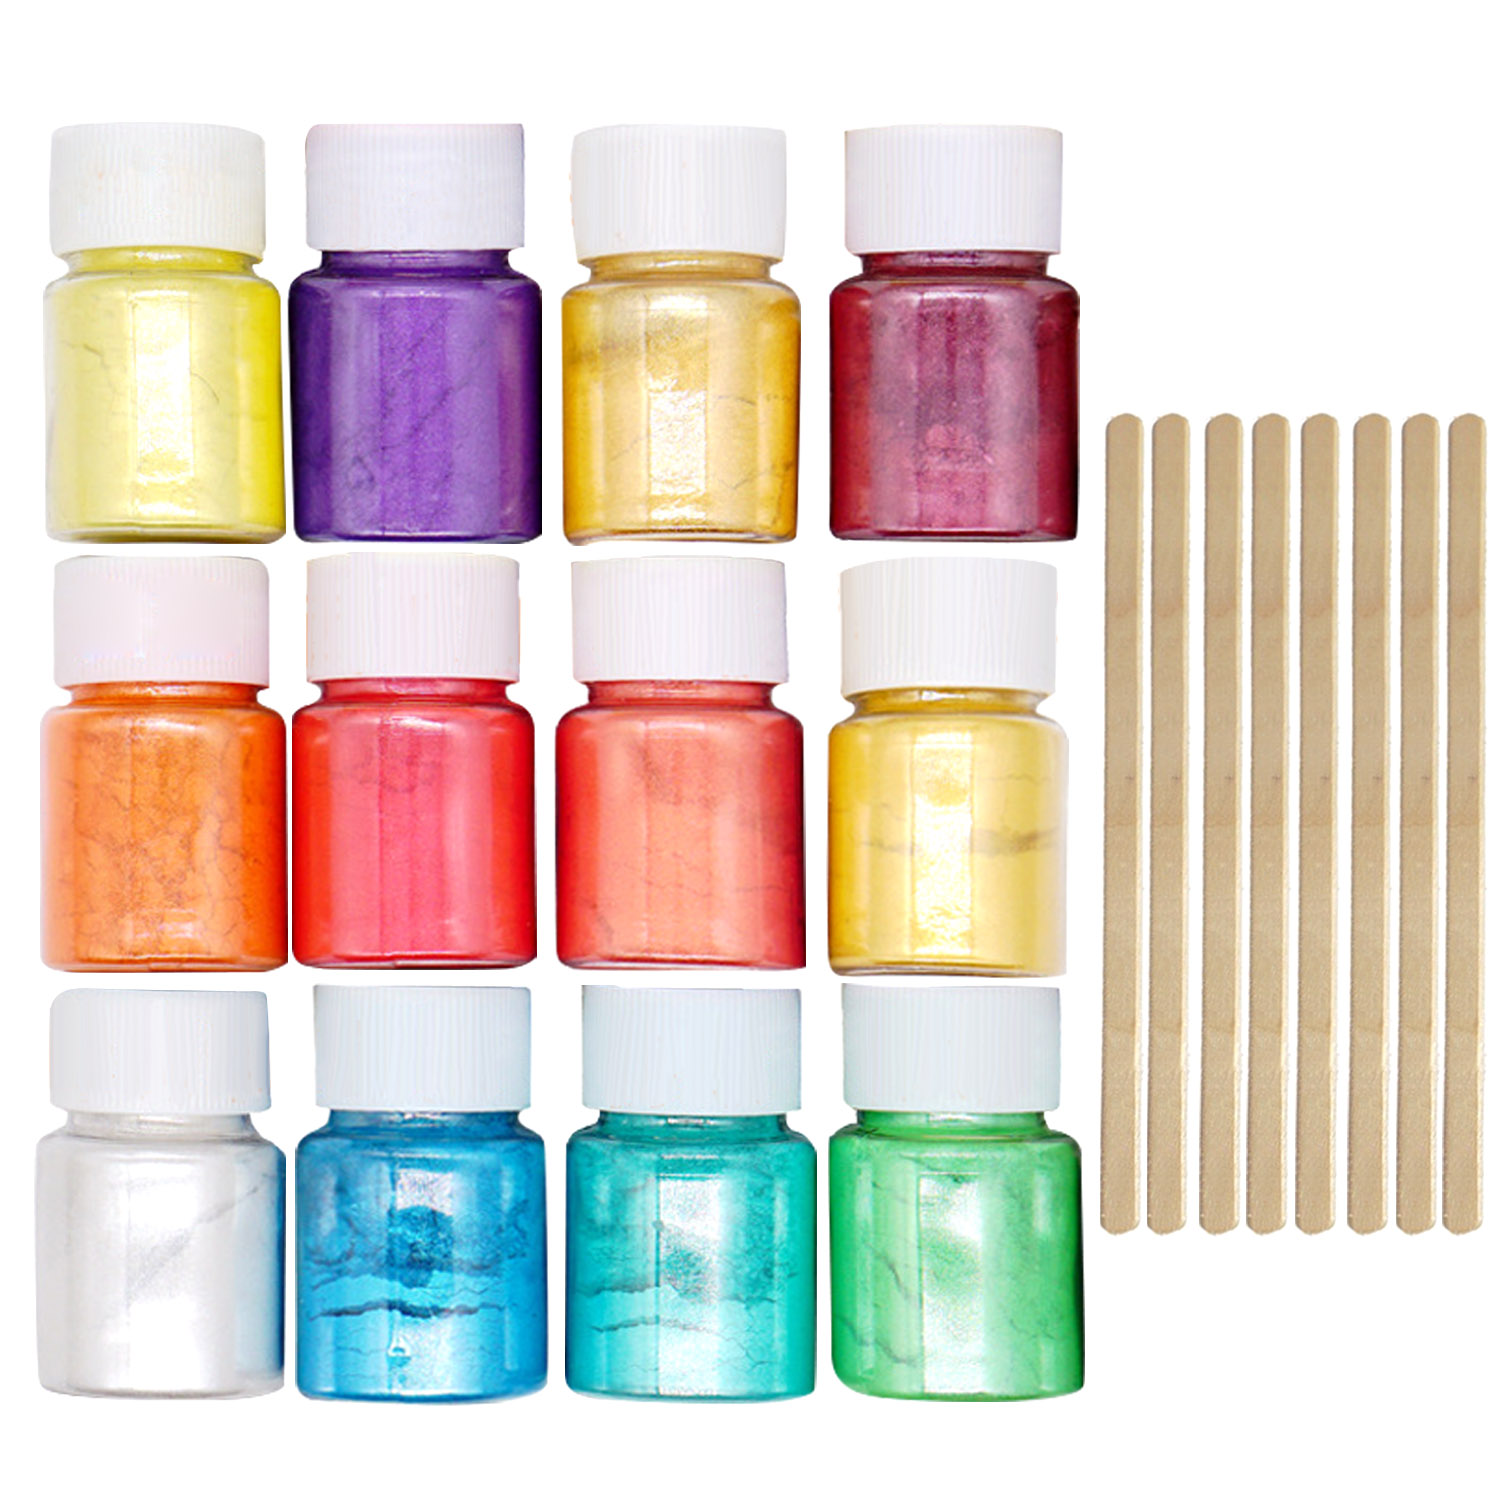 12 Colors Colorant Pigments Mica Pearl Powder With 8pcs Wooden Stirring Rods For DIY Nail Art Craft Slime Making Supplies